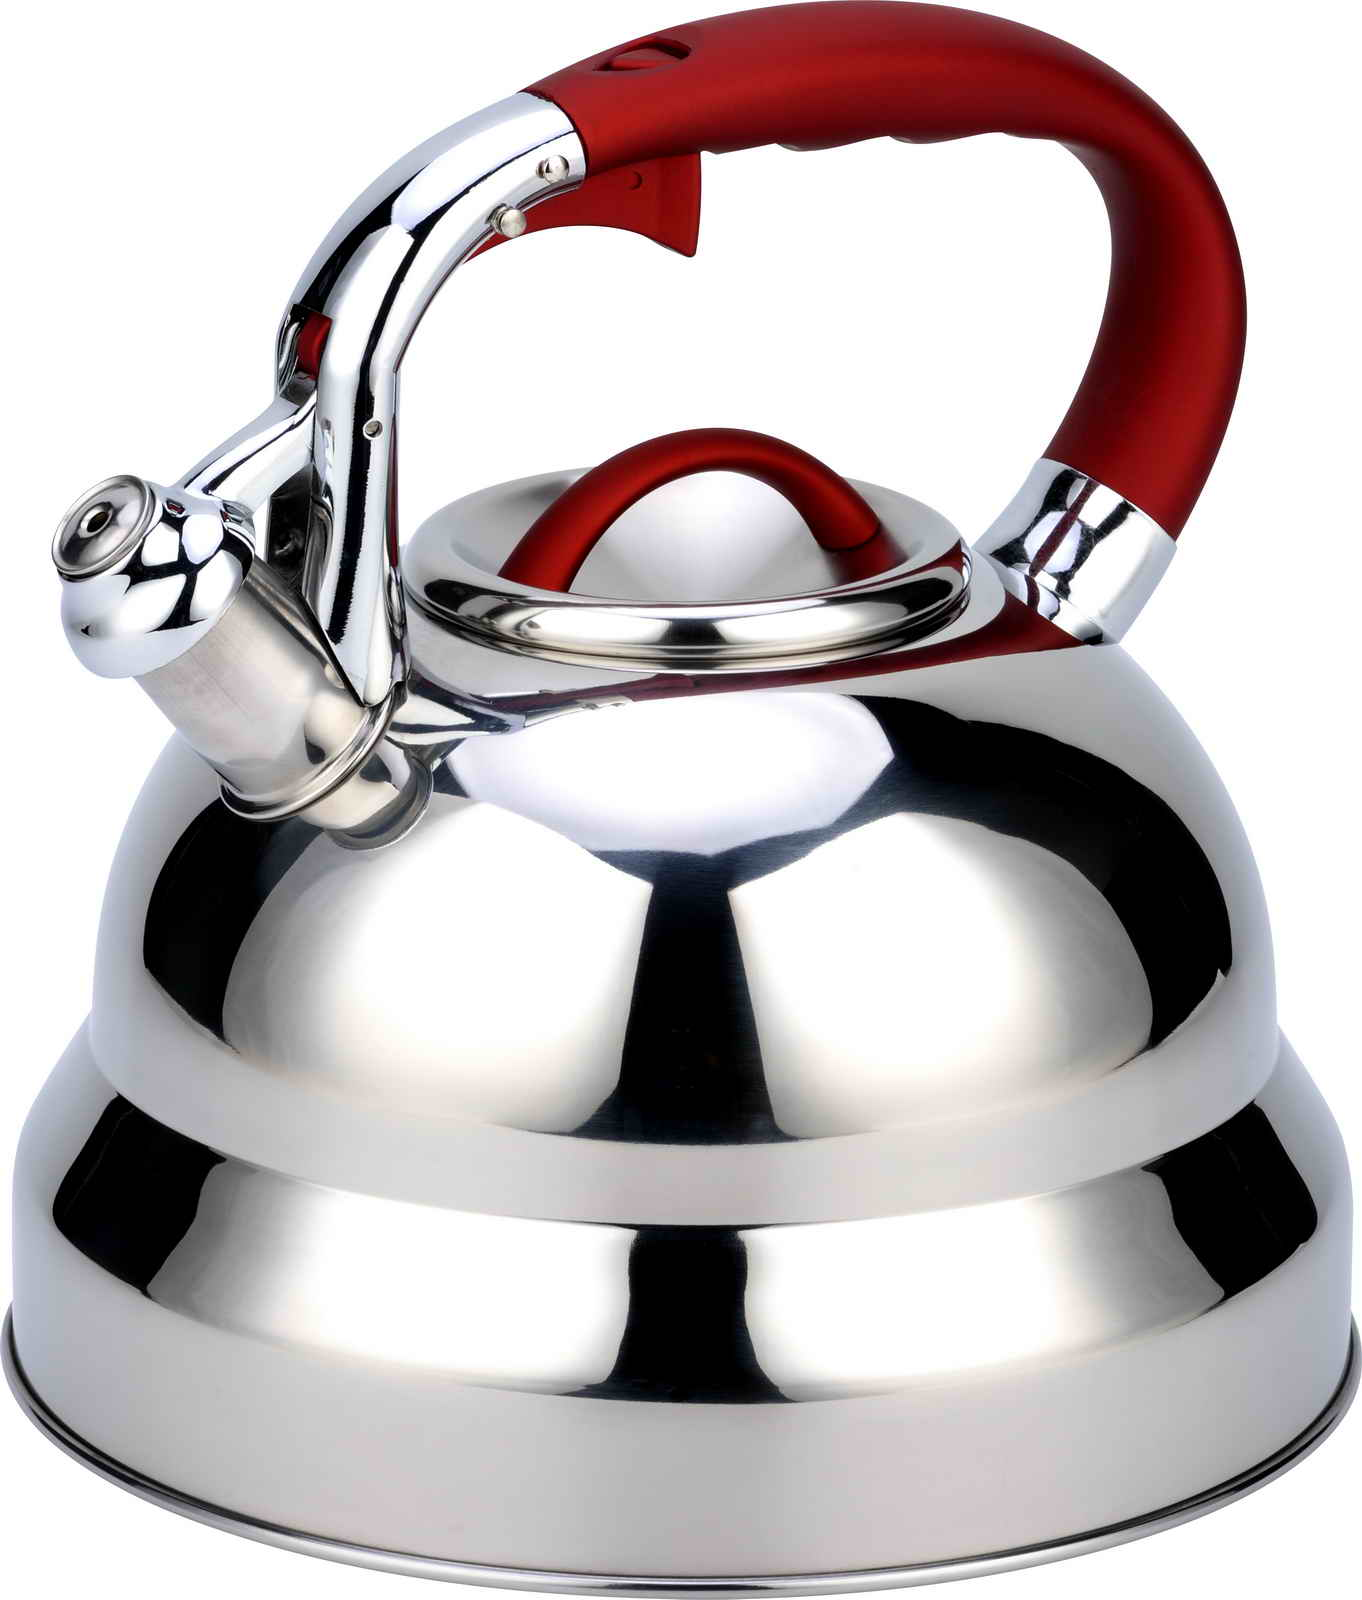 5.0L big capacity tea pot